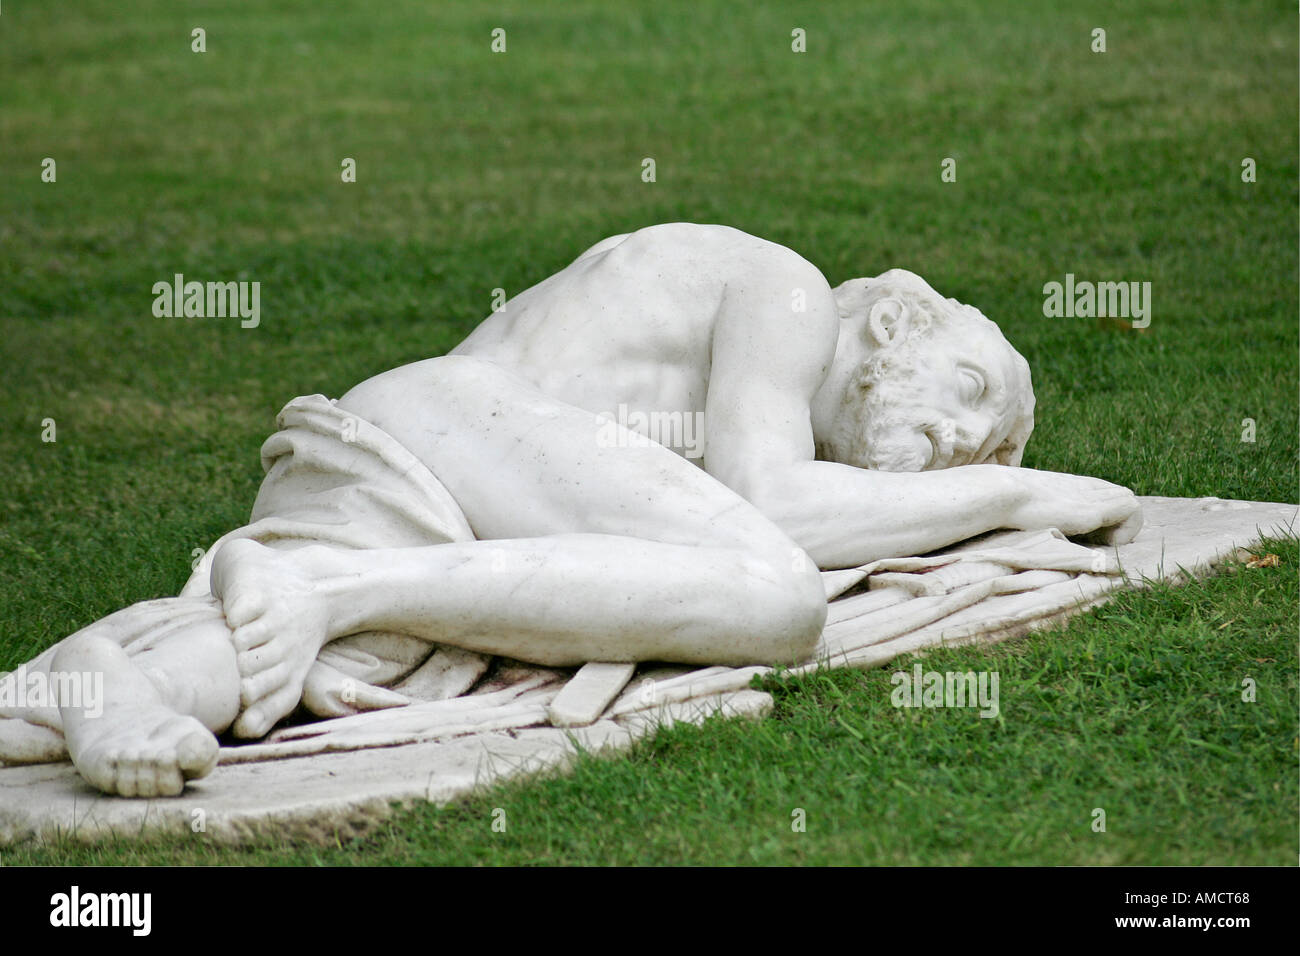 White marble sculpture of a semi clothed man lying on grass. Parham House a14d3671a